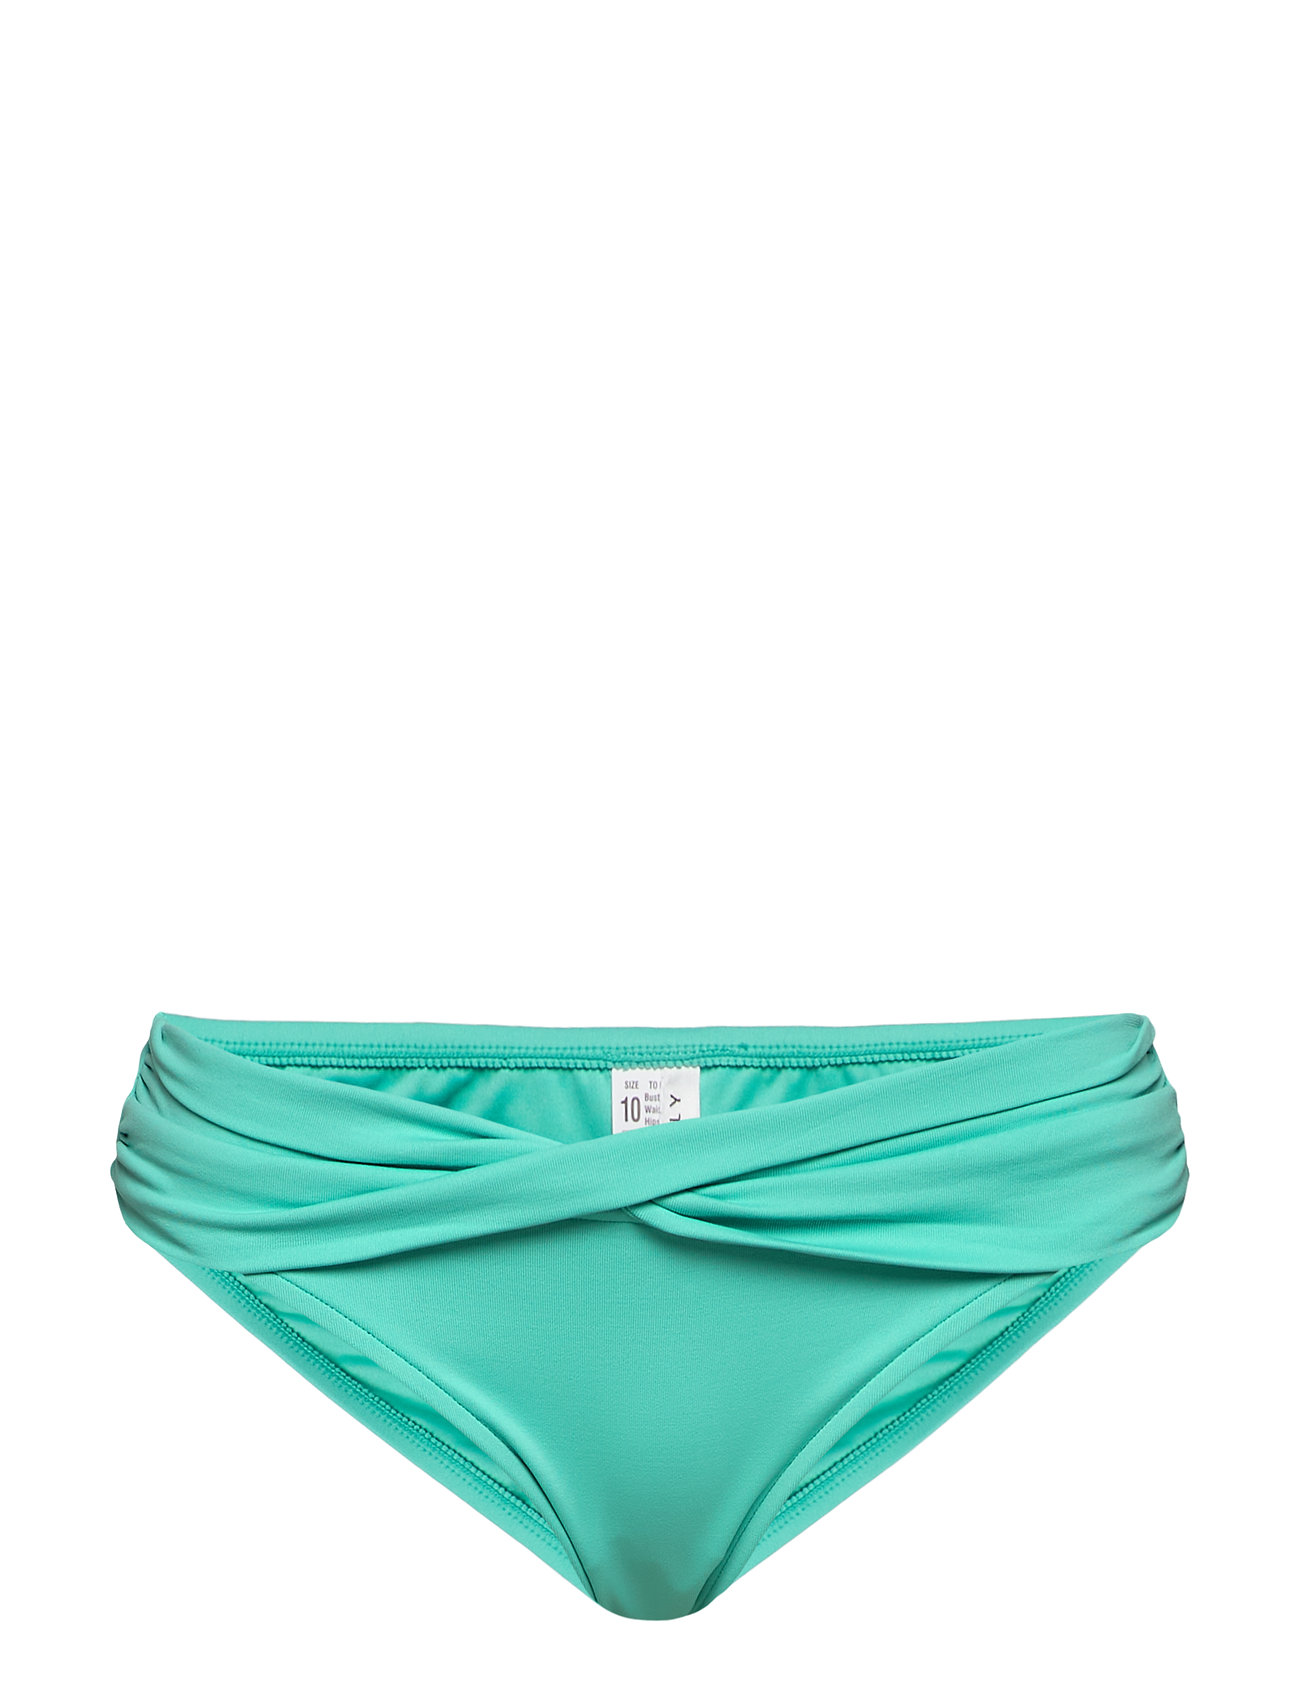 Seafolly Seafolly Twist Band Hipster - ANTIGUA BLUE